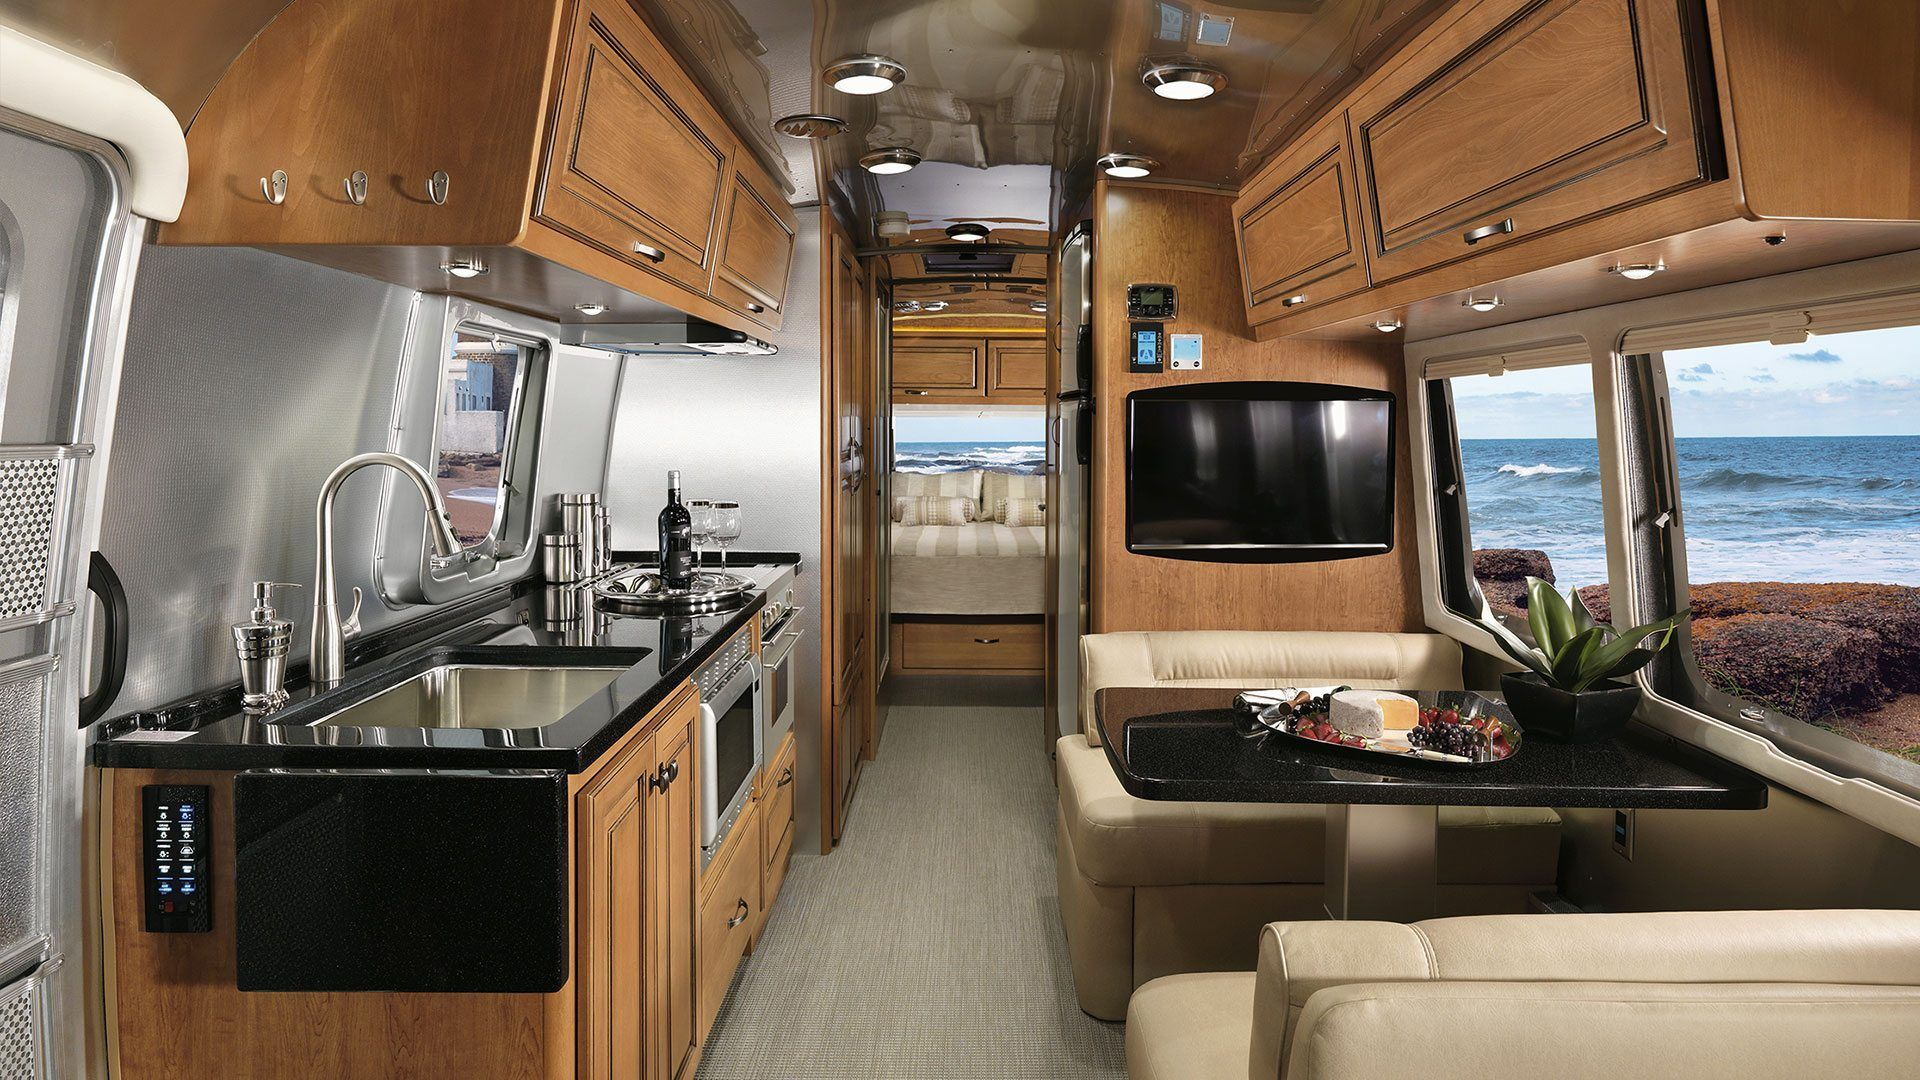 44 Rv Airstream Design For Your Travel Comfort Camper And Travel Penitifashion In 2020 Airstream Trailers Travel Trailer Interior Airstream Interior